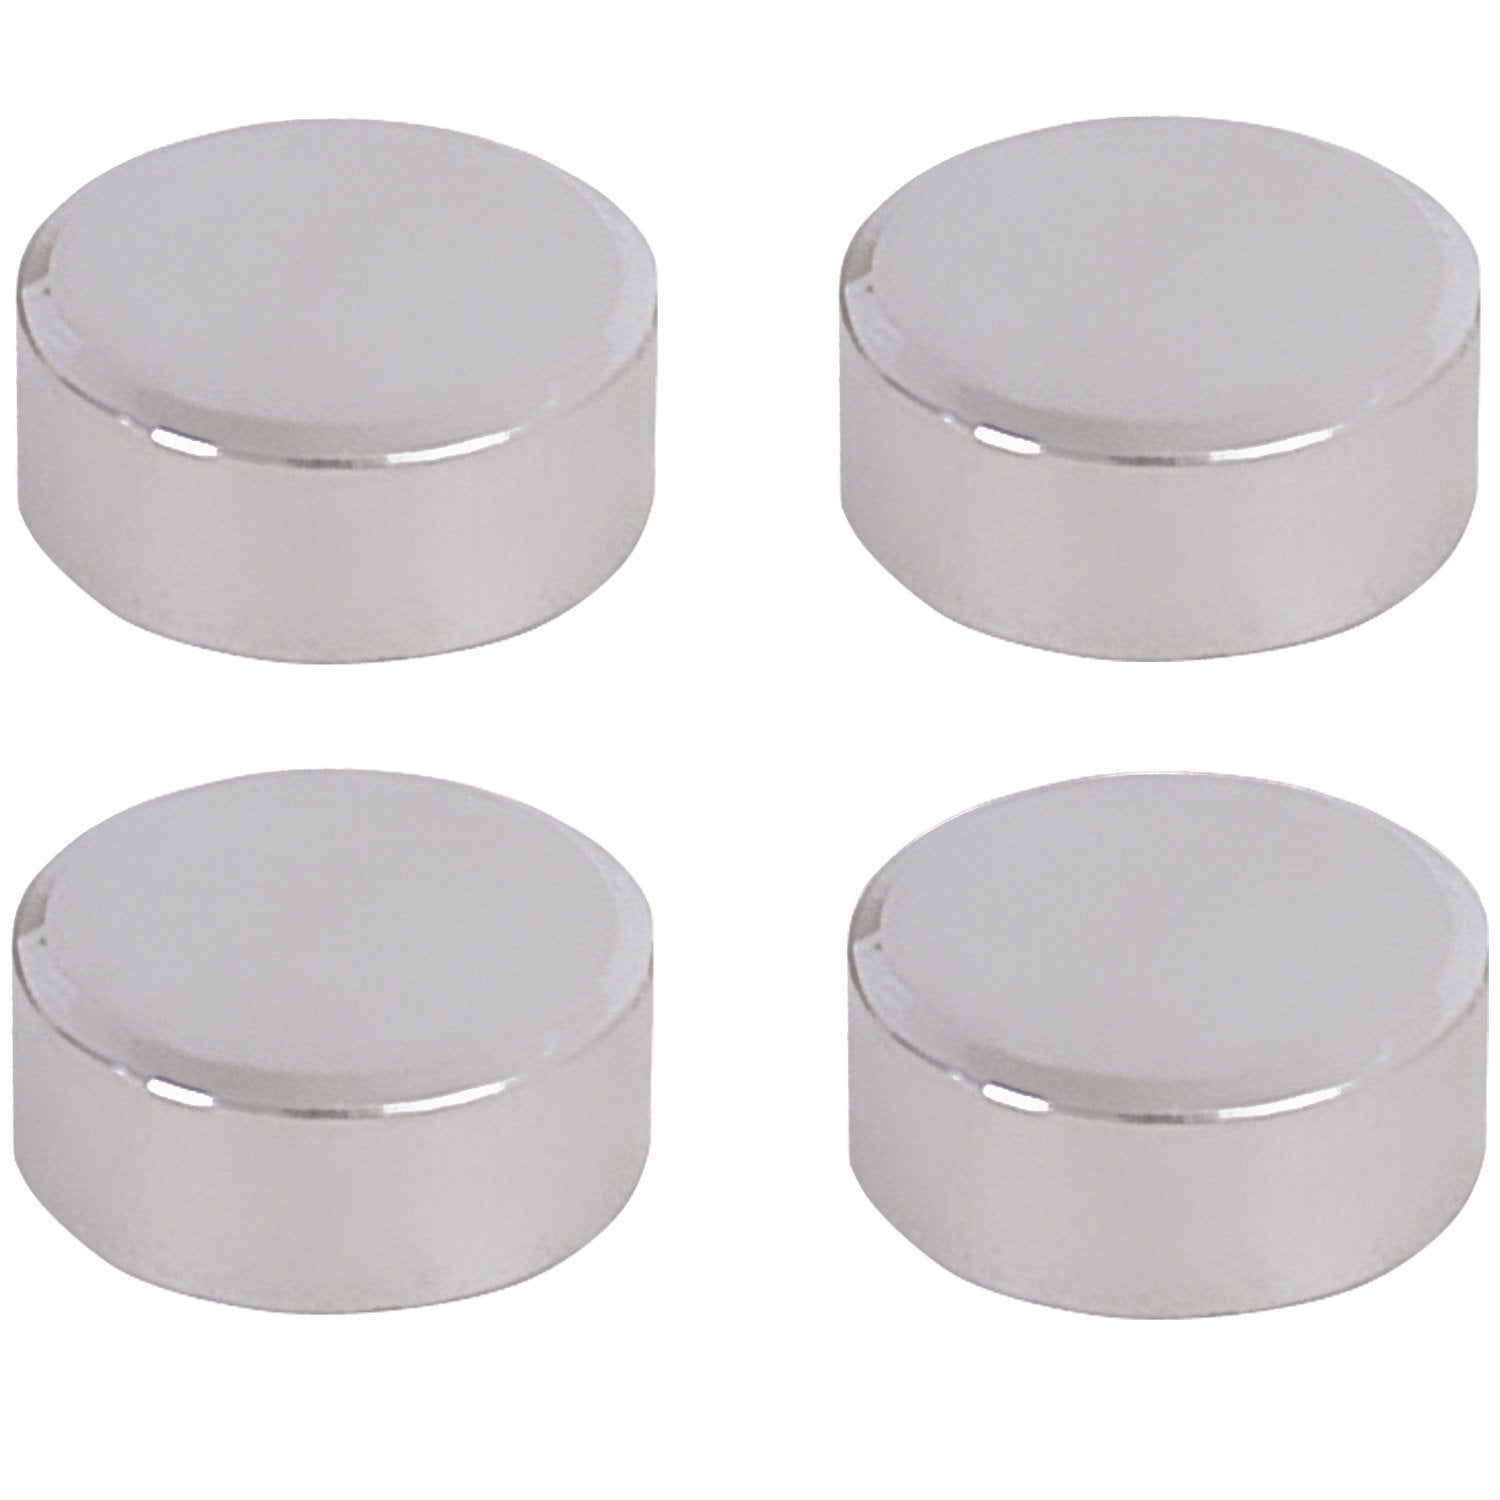 Lot de 4 pattes glace rond chrom brillant leroy merlin - Fixation murale tv leroy merlin ...